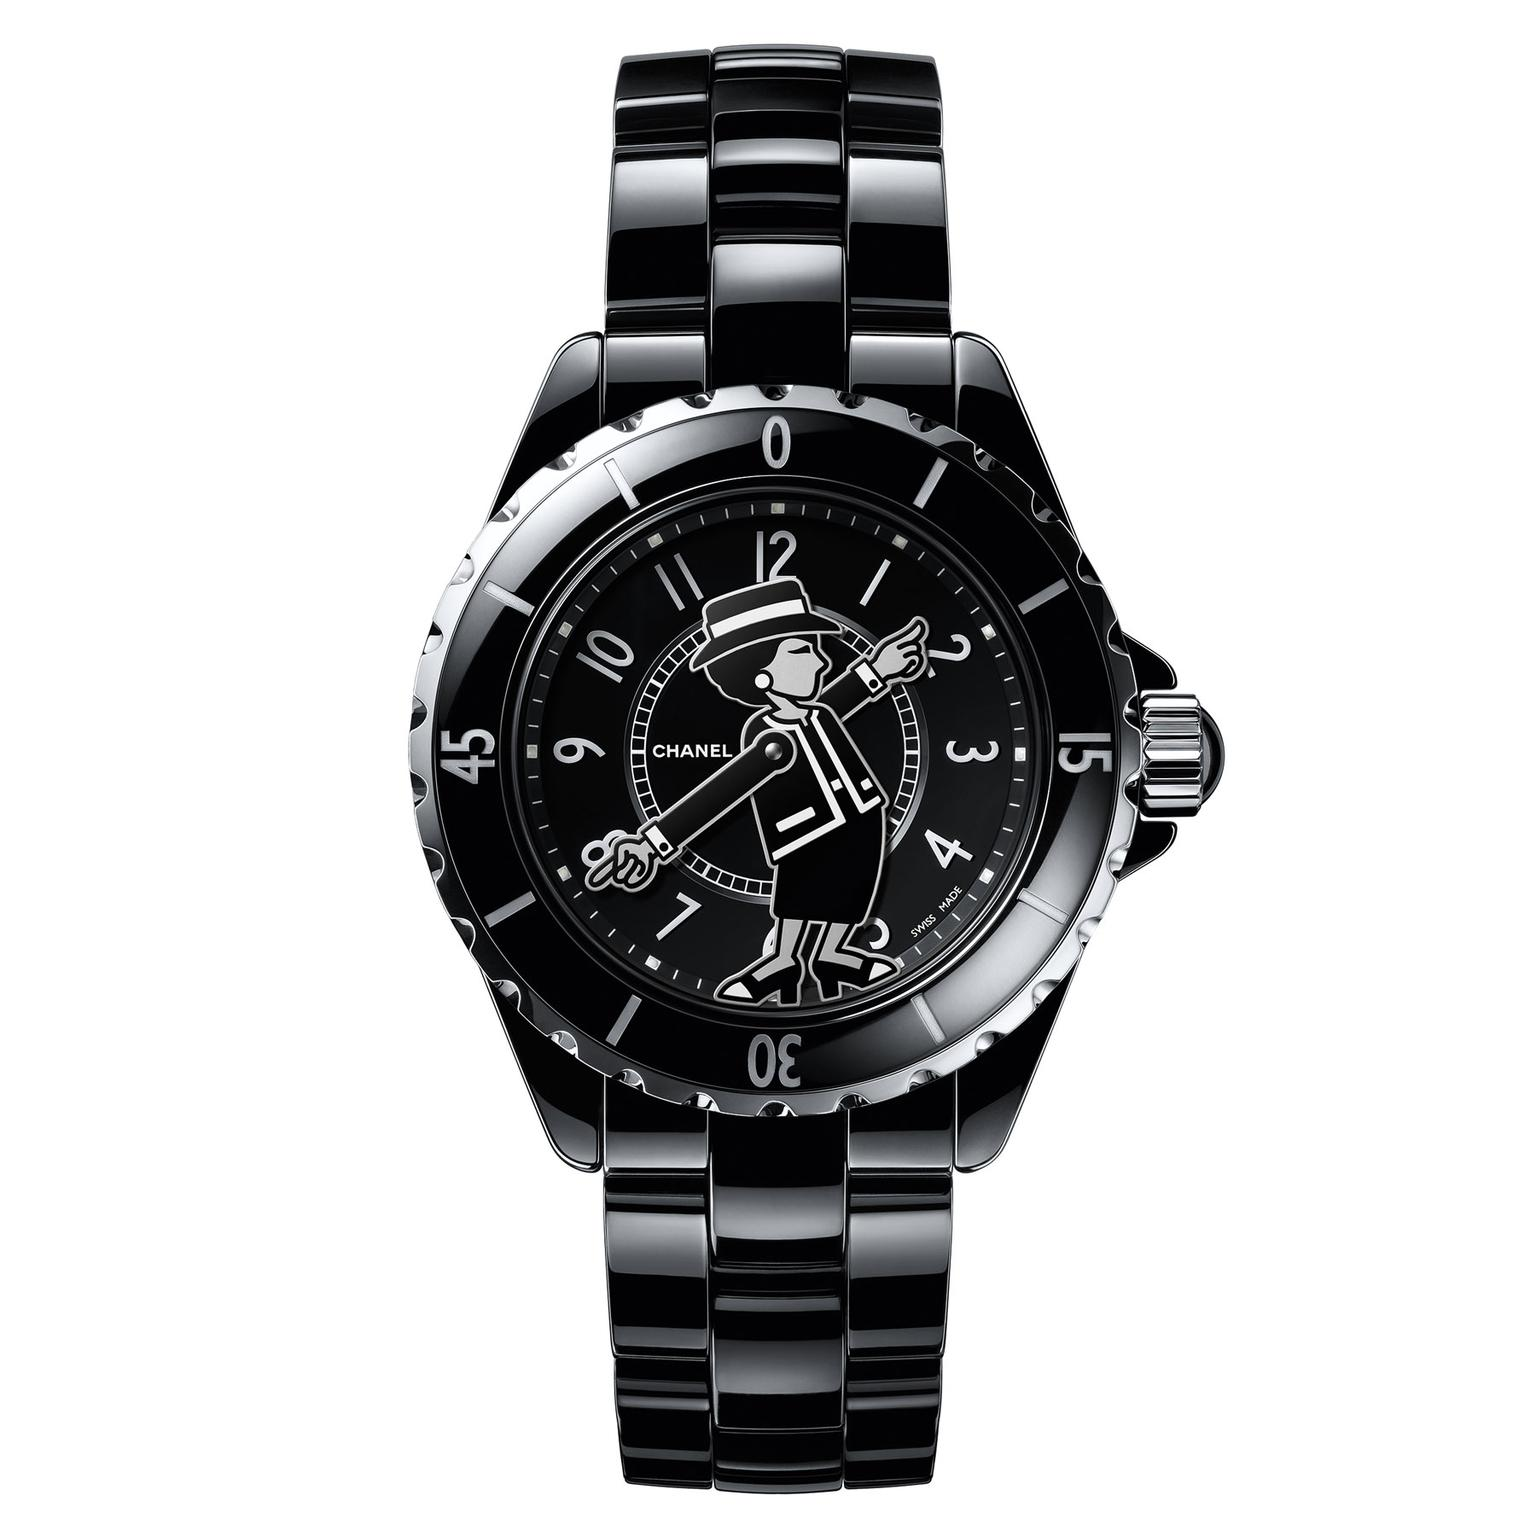 Chanel J12 Mademoiselle watch in black